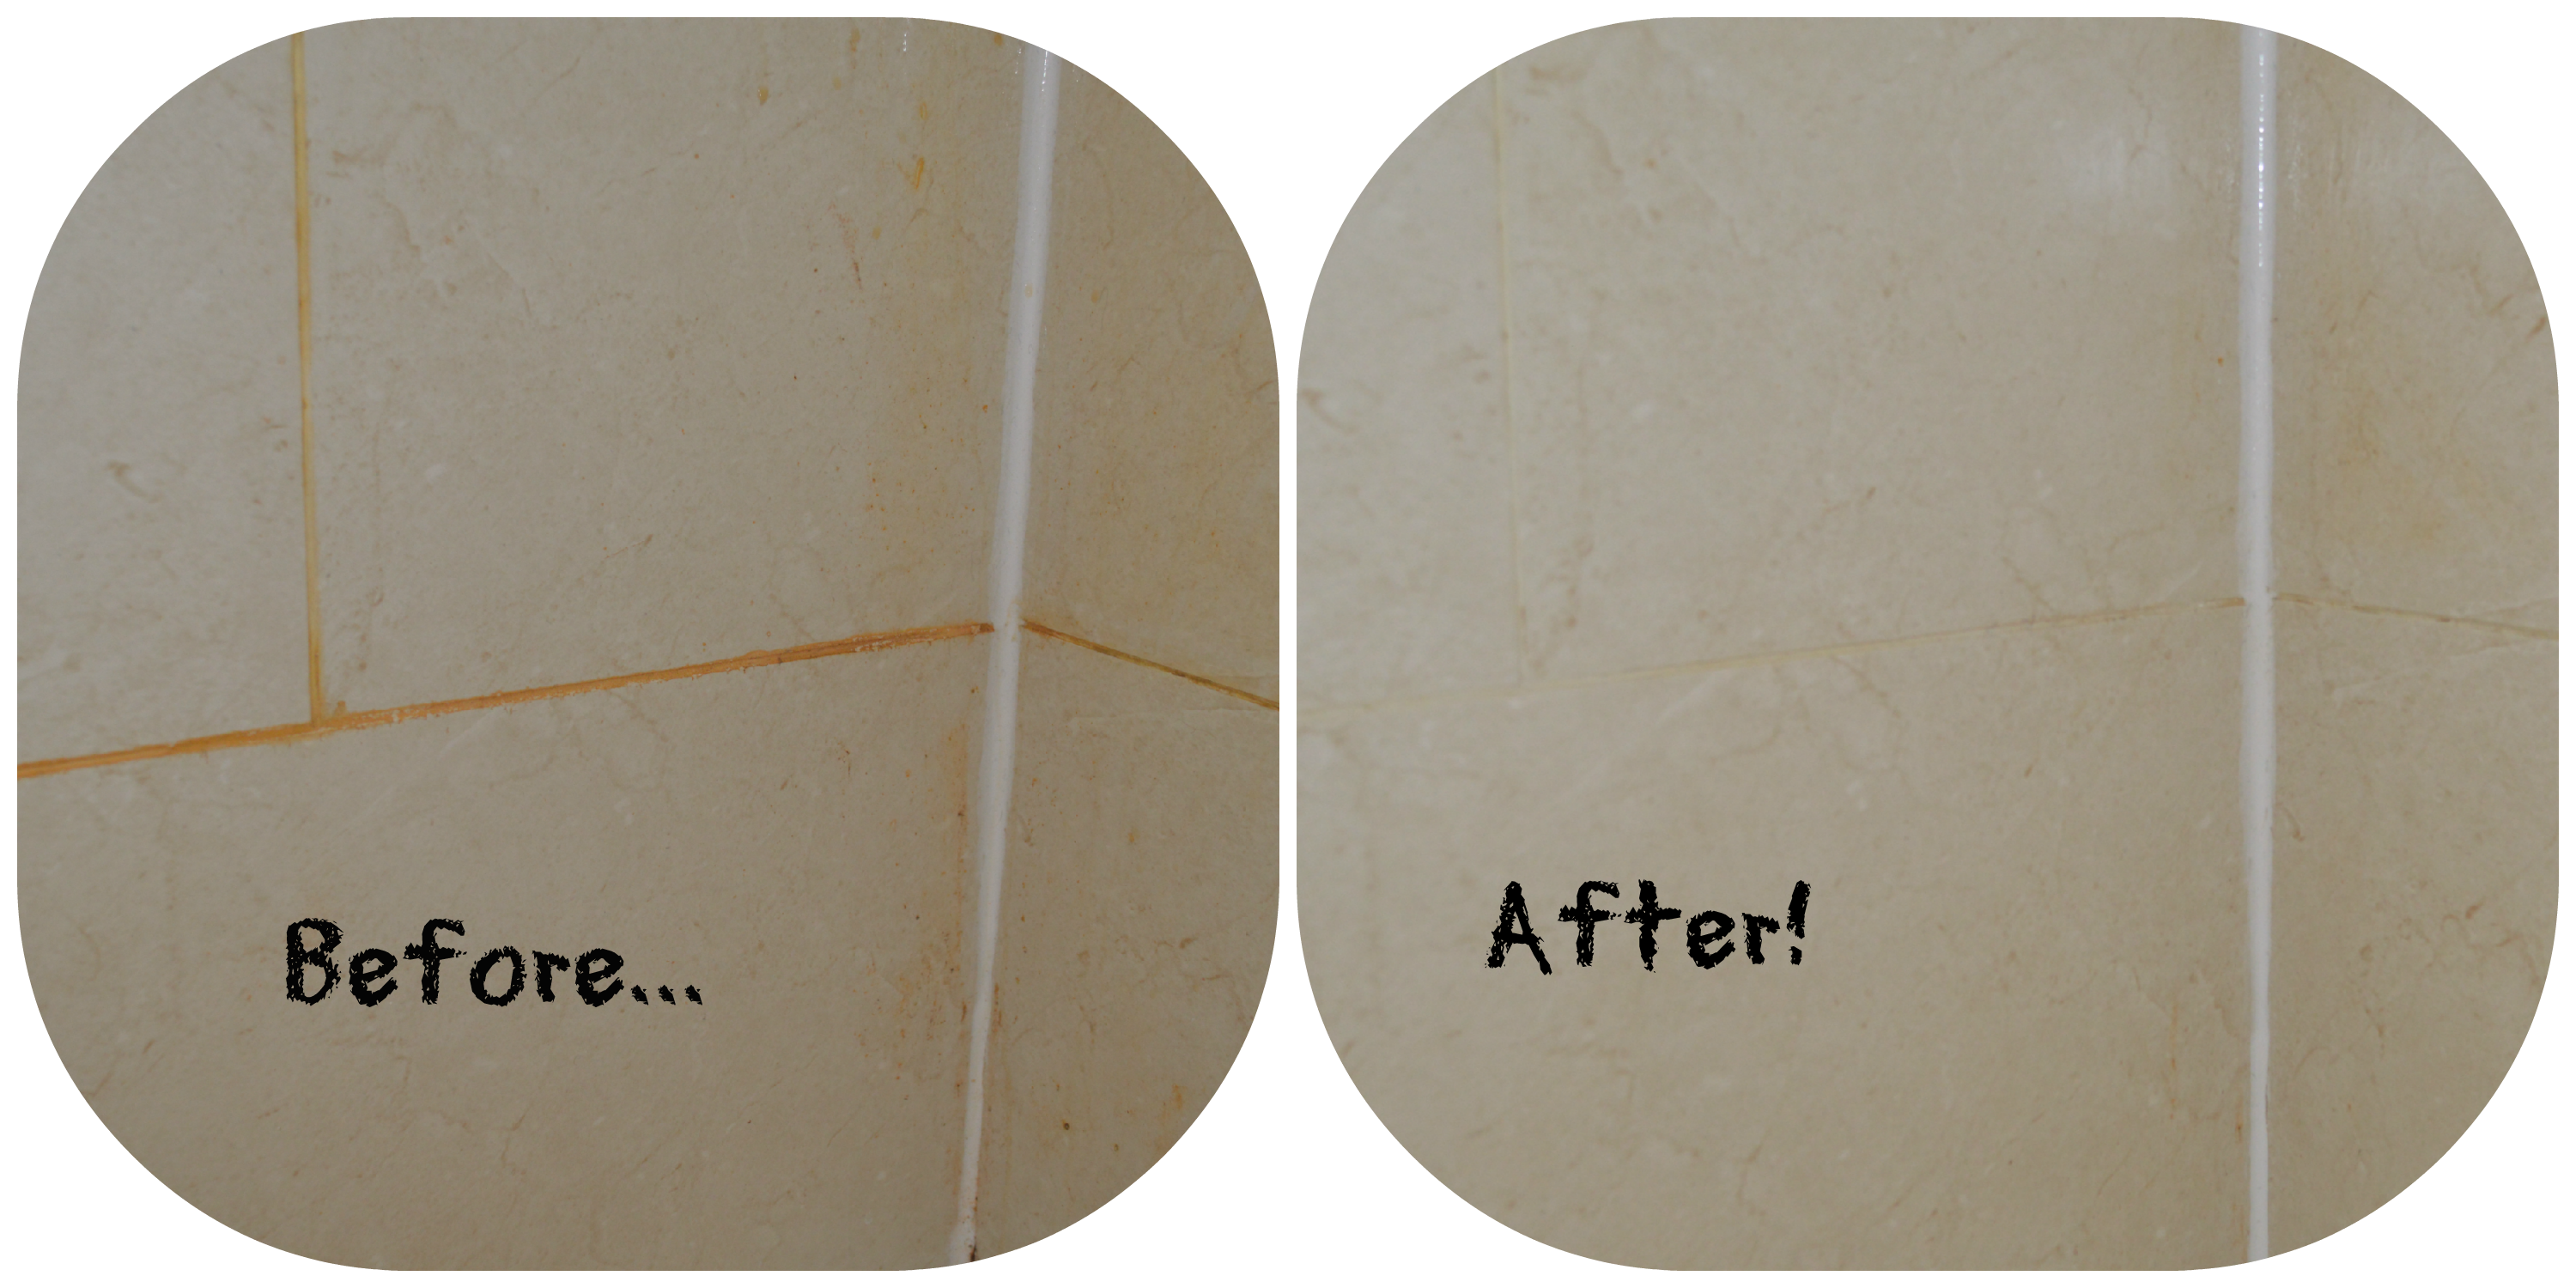 Steam cleaning bathrooms - All That Previous Hard Work And Using The Home Pro Compact Steam Cleaner Got Rid Of The Orange Iron Stains In Ten Minutes Not Just The Area Shown But The